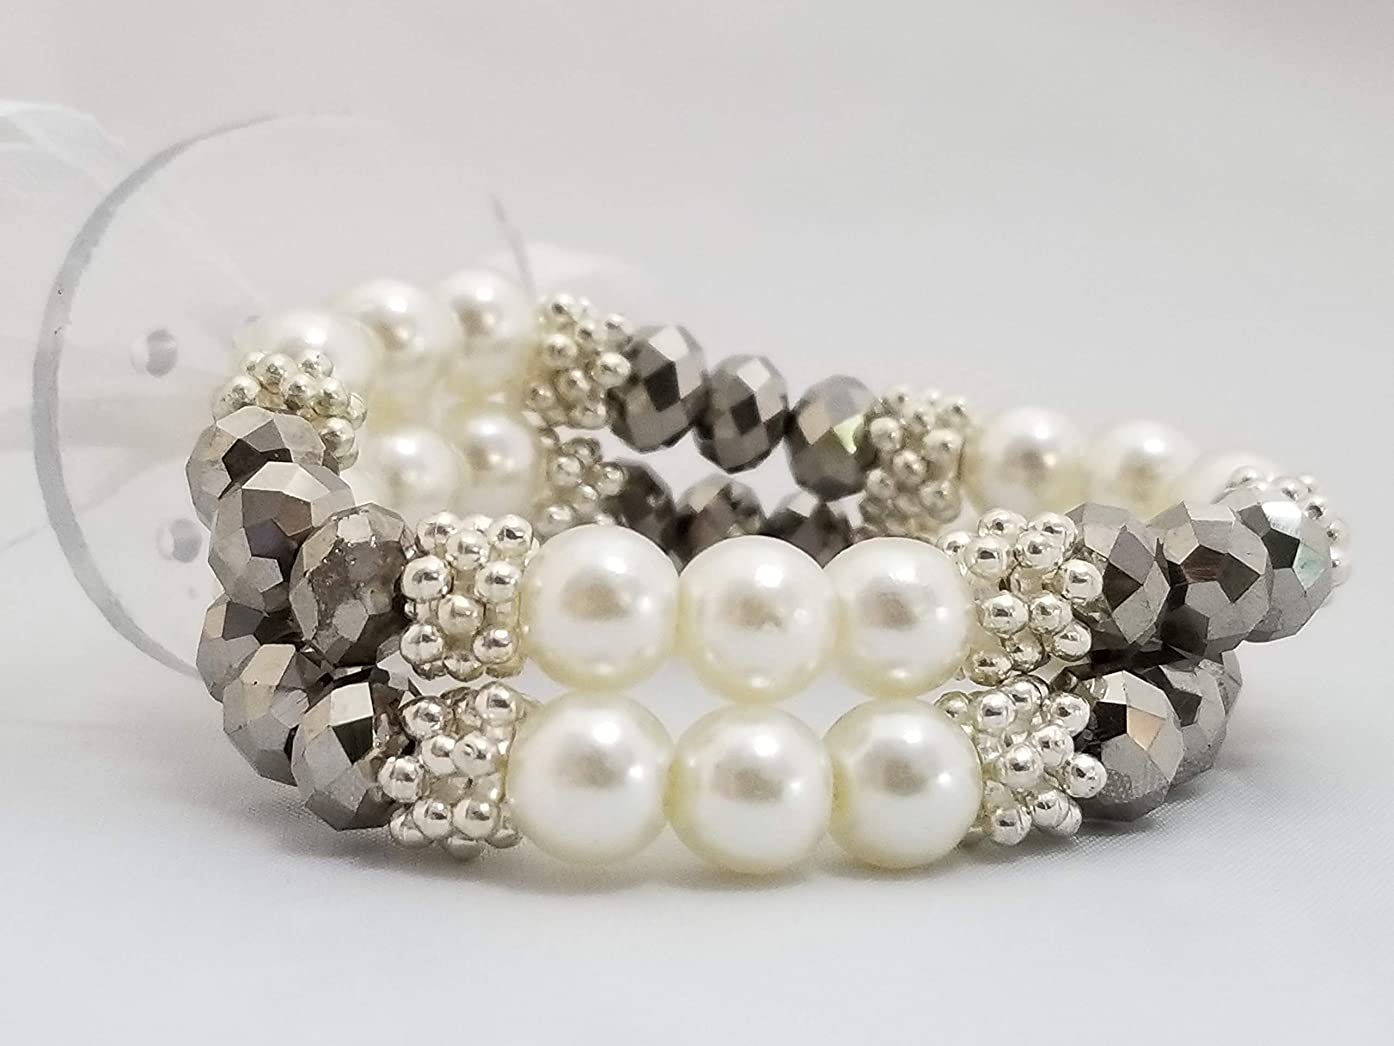 Floral Corsage Bracelet in Pewter, Faux Pearl Rhinestone Grace Collection